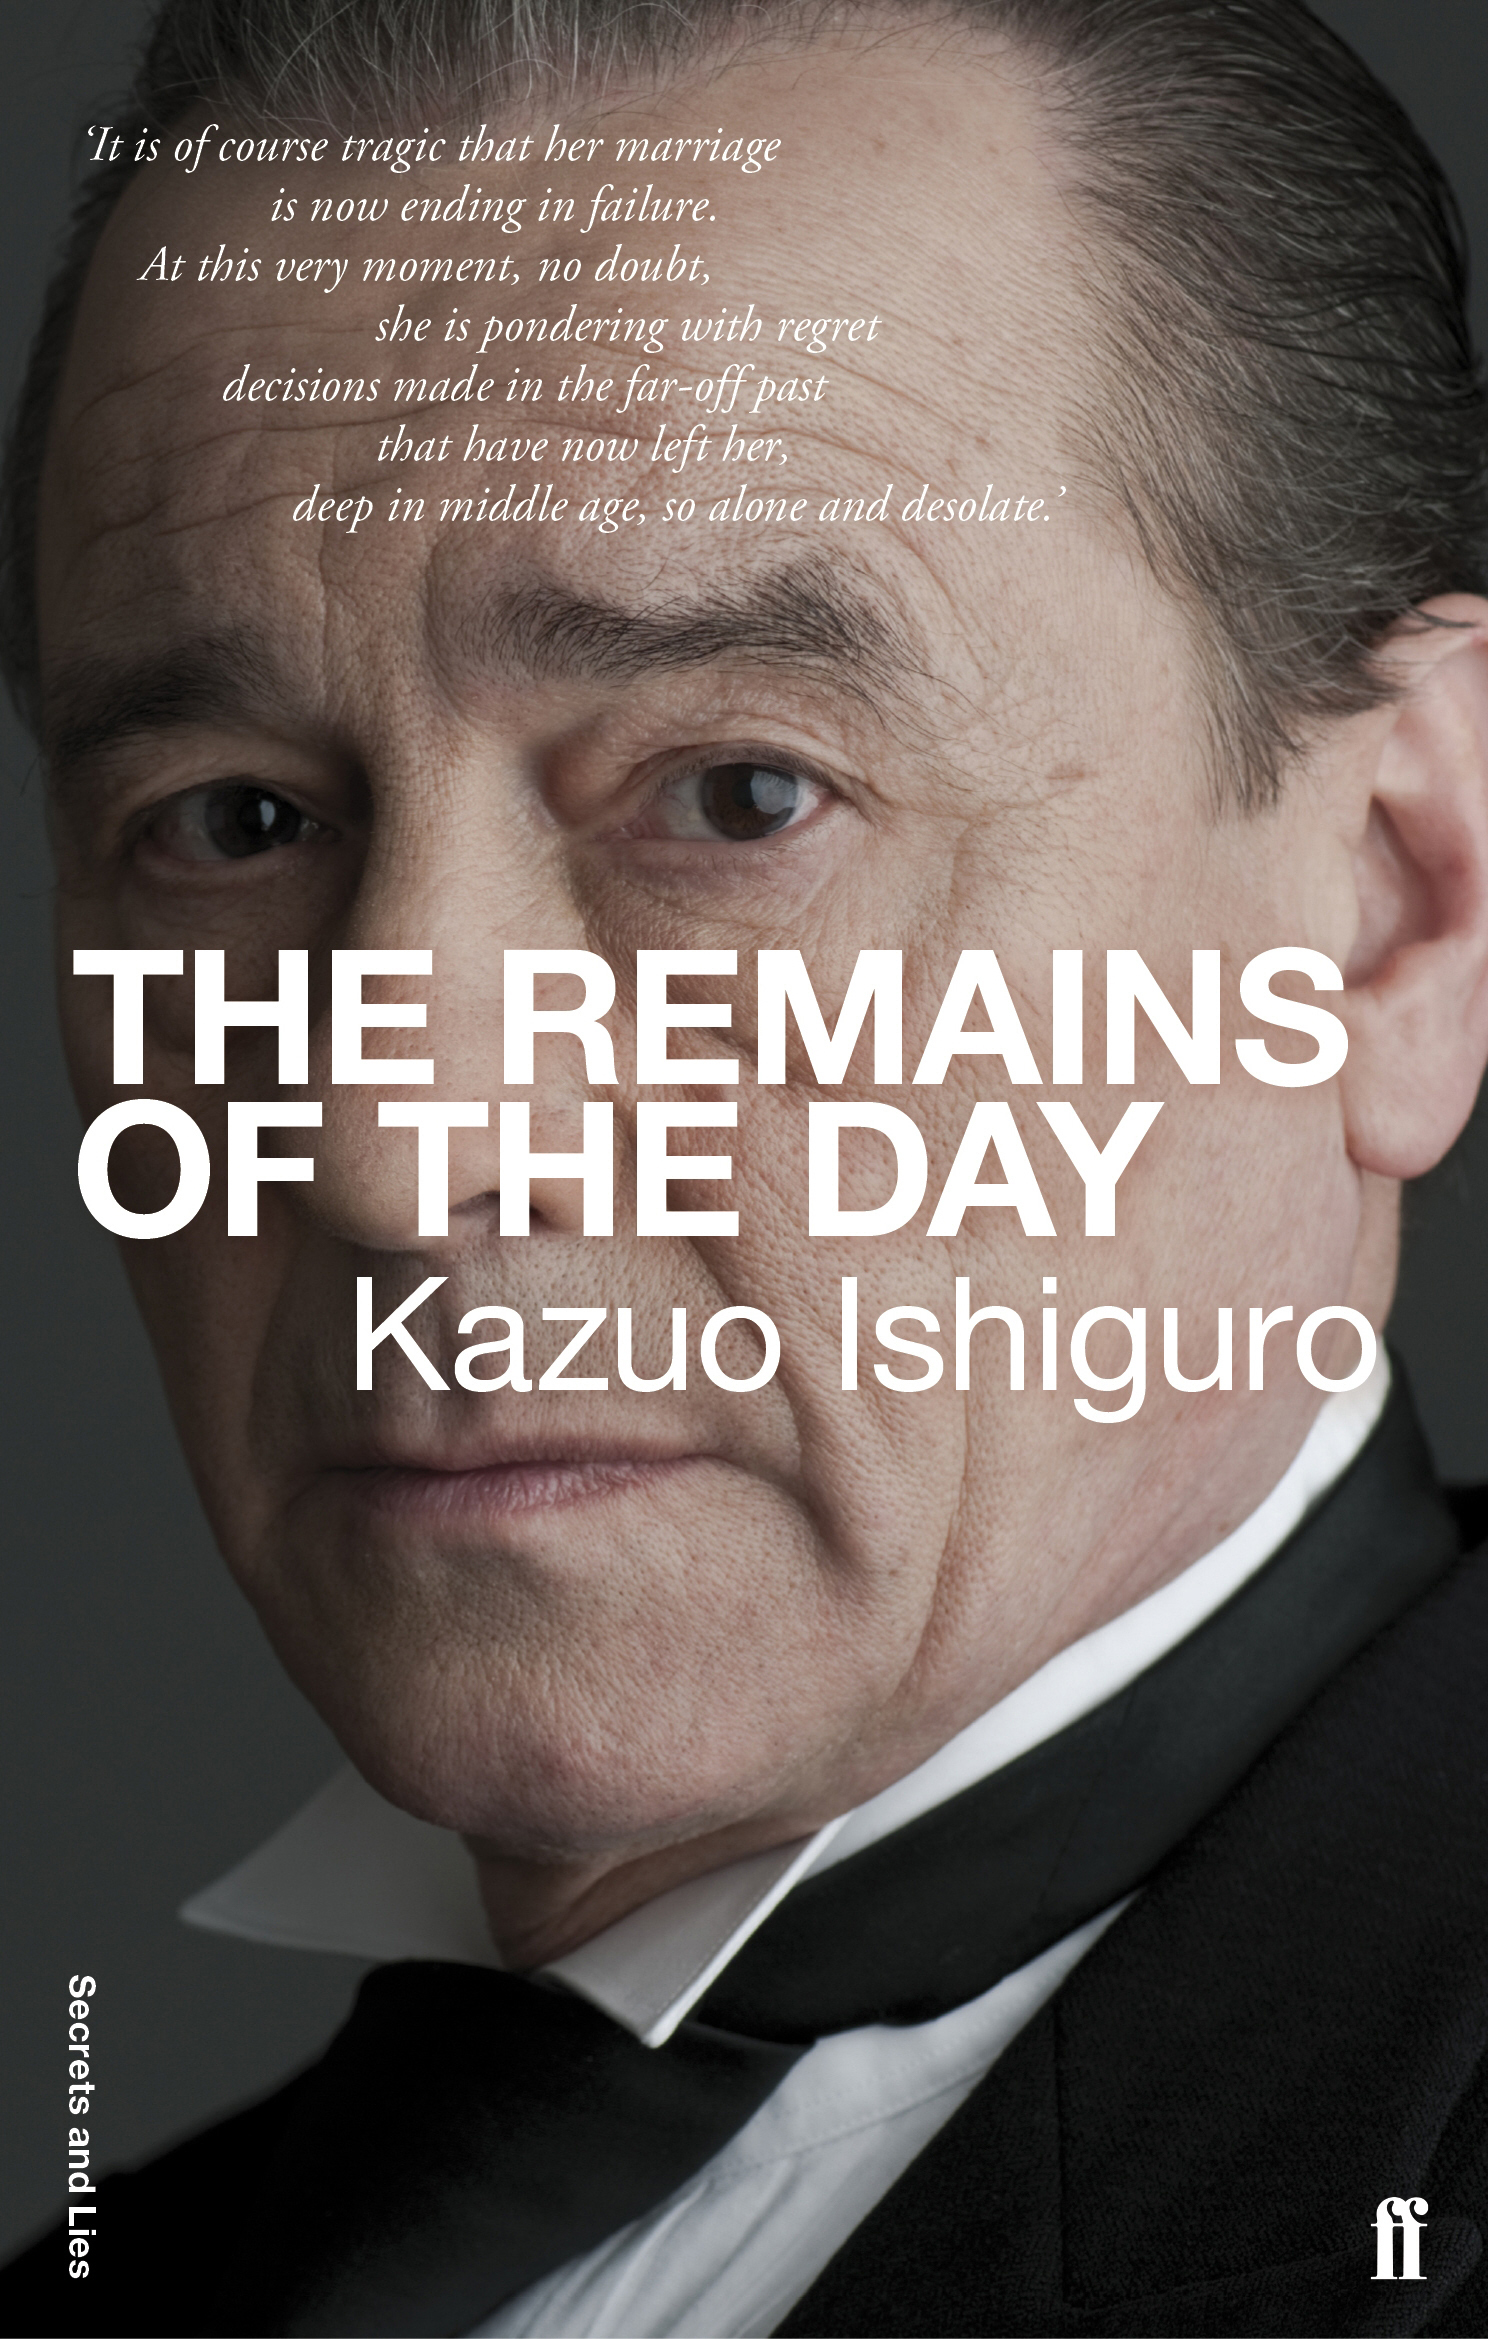 an introduction to the life and history of kazuo ishiguros Hopkins in the film adaptation of kazuo ishiguros remains of the day some of my  computing fundamentals introduction to computers  reflections on a dying life.